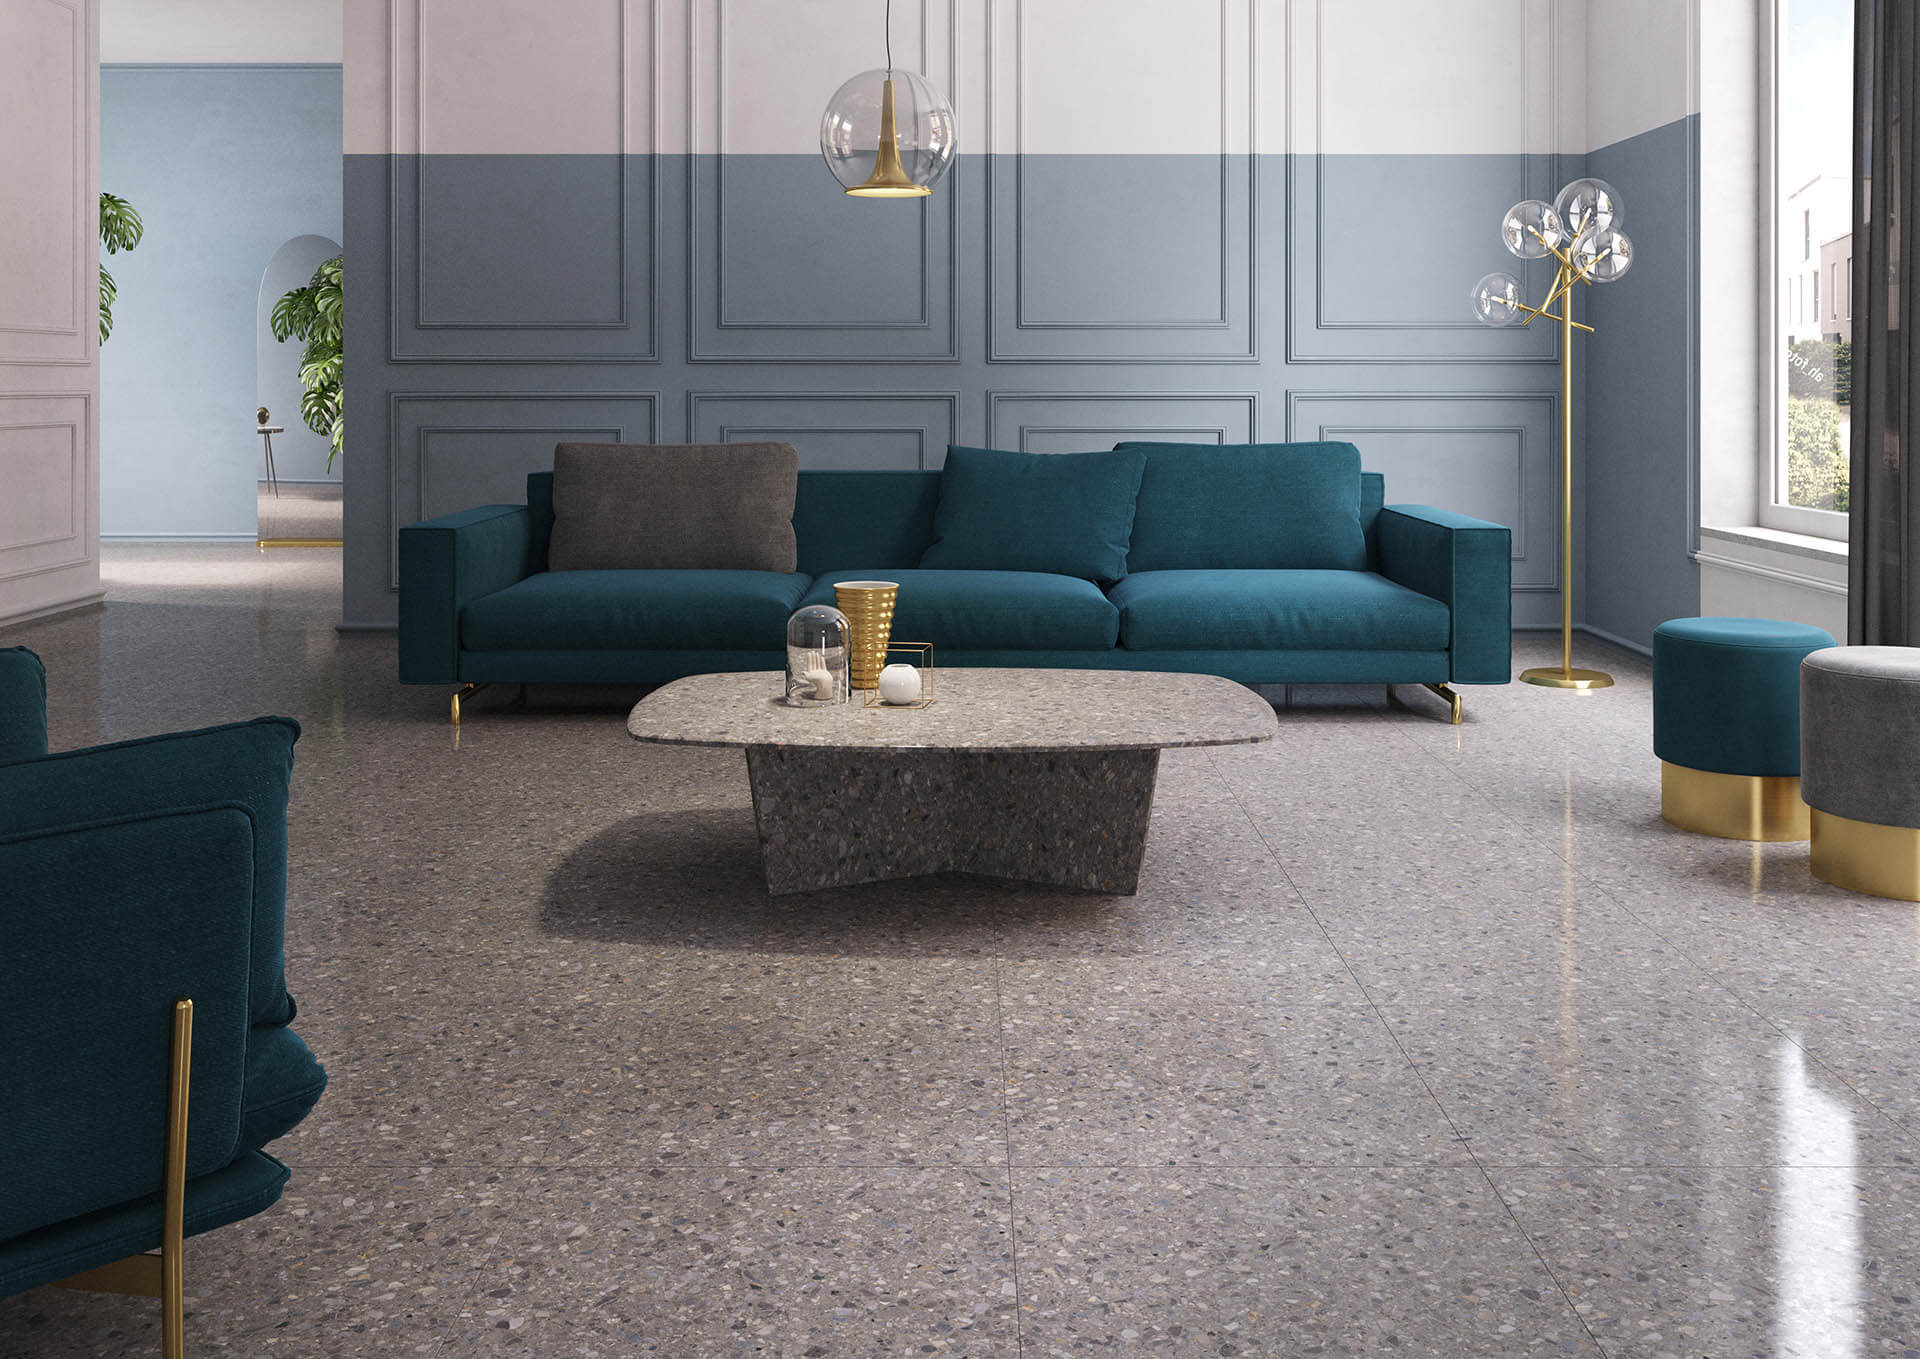 bluemotion_santamargherita_rendering_interni_fotorealistico_3d_ (1)